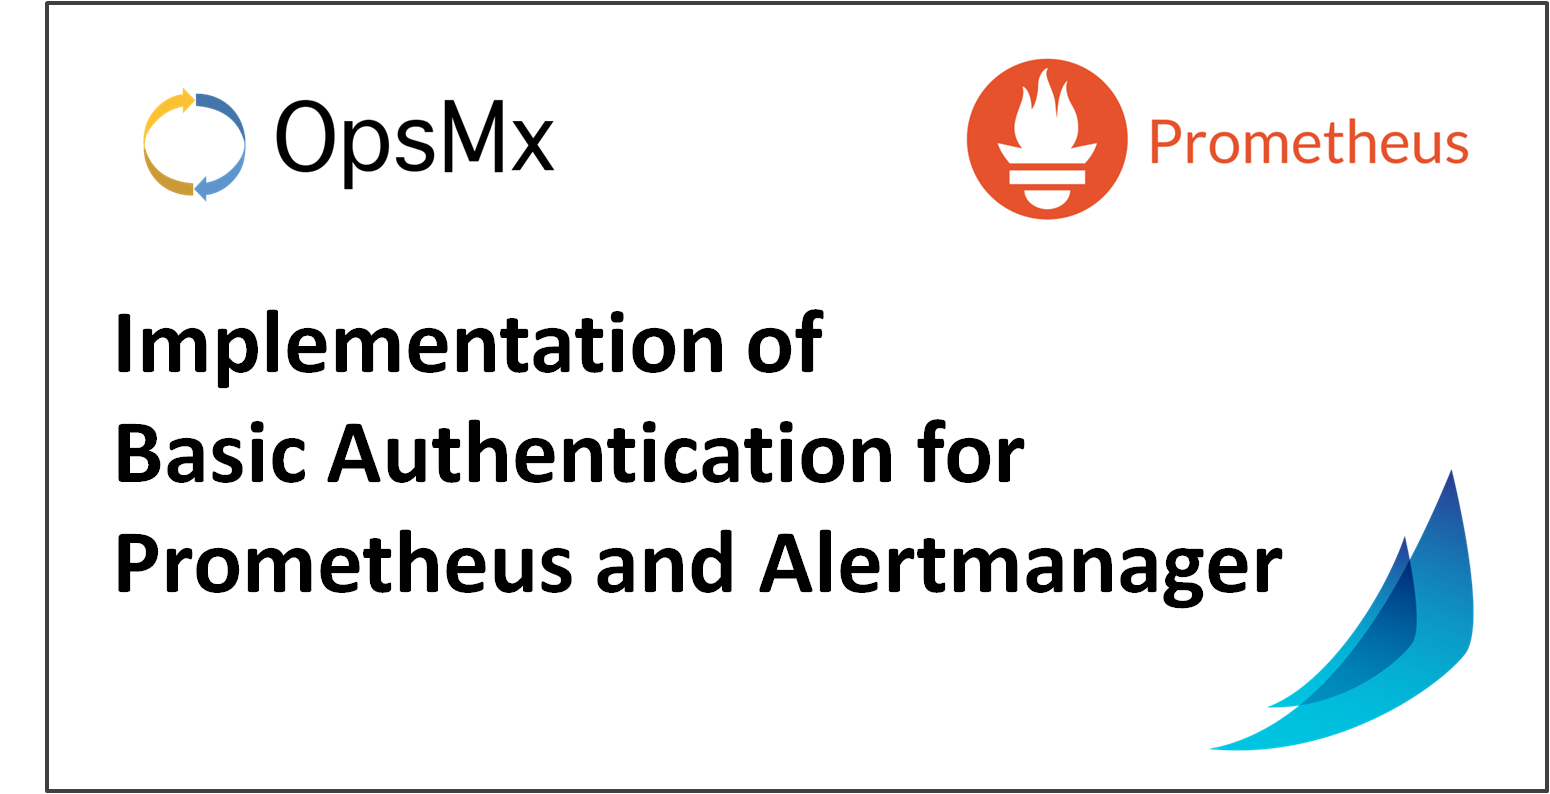 Implementation of Basic Authentication for Prometheus and Alertmanager used in Spinnaker CD pipeline